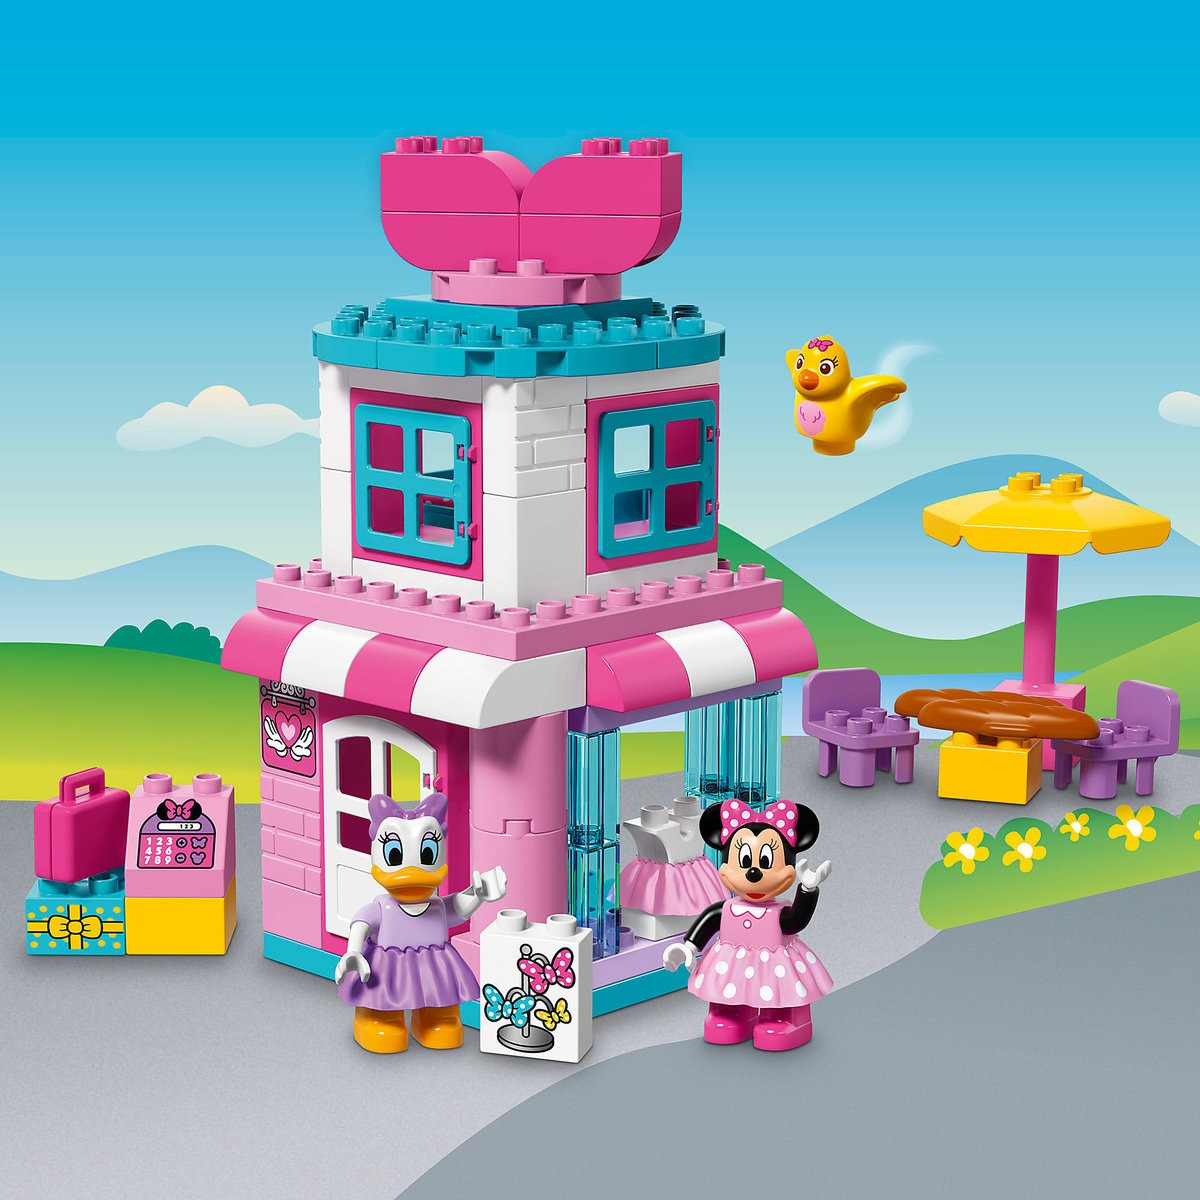 Minnie Mouse Bow-tique Playset by LEGO | shopDisney